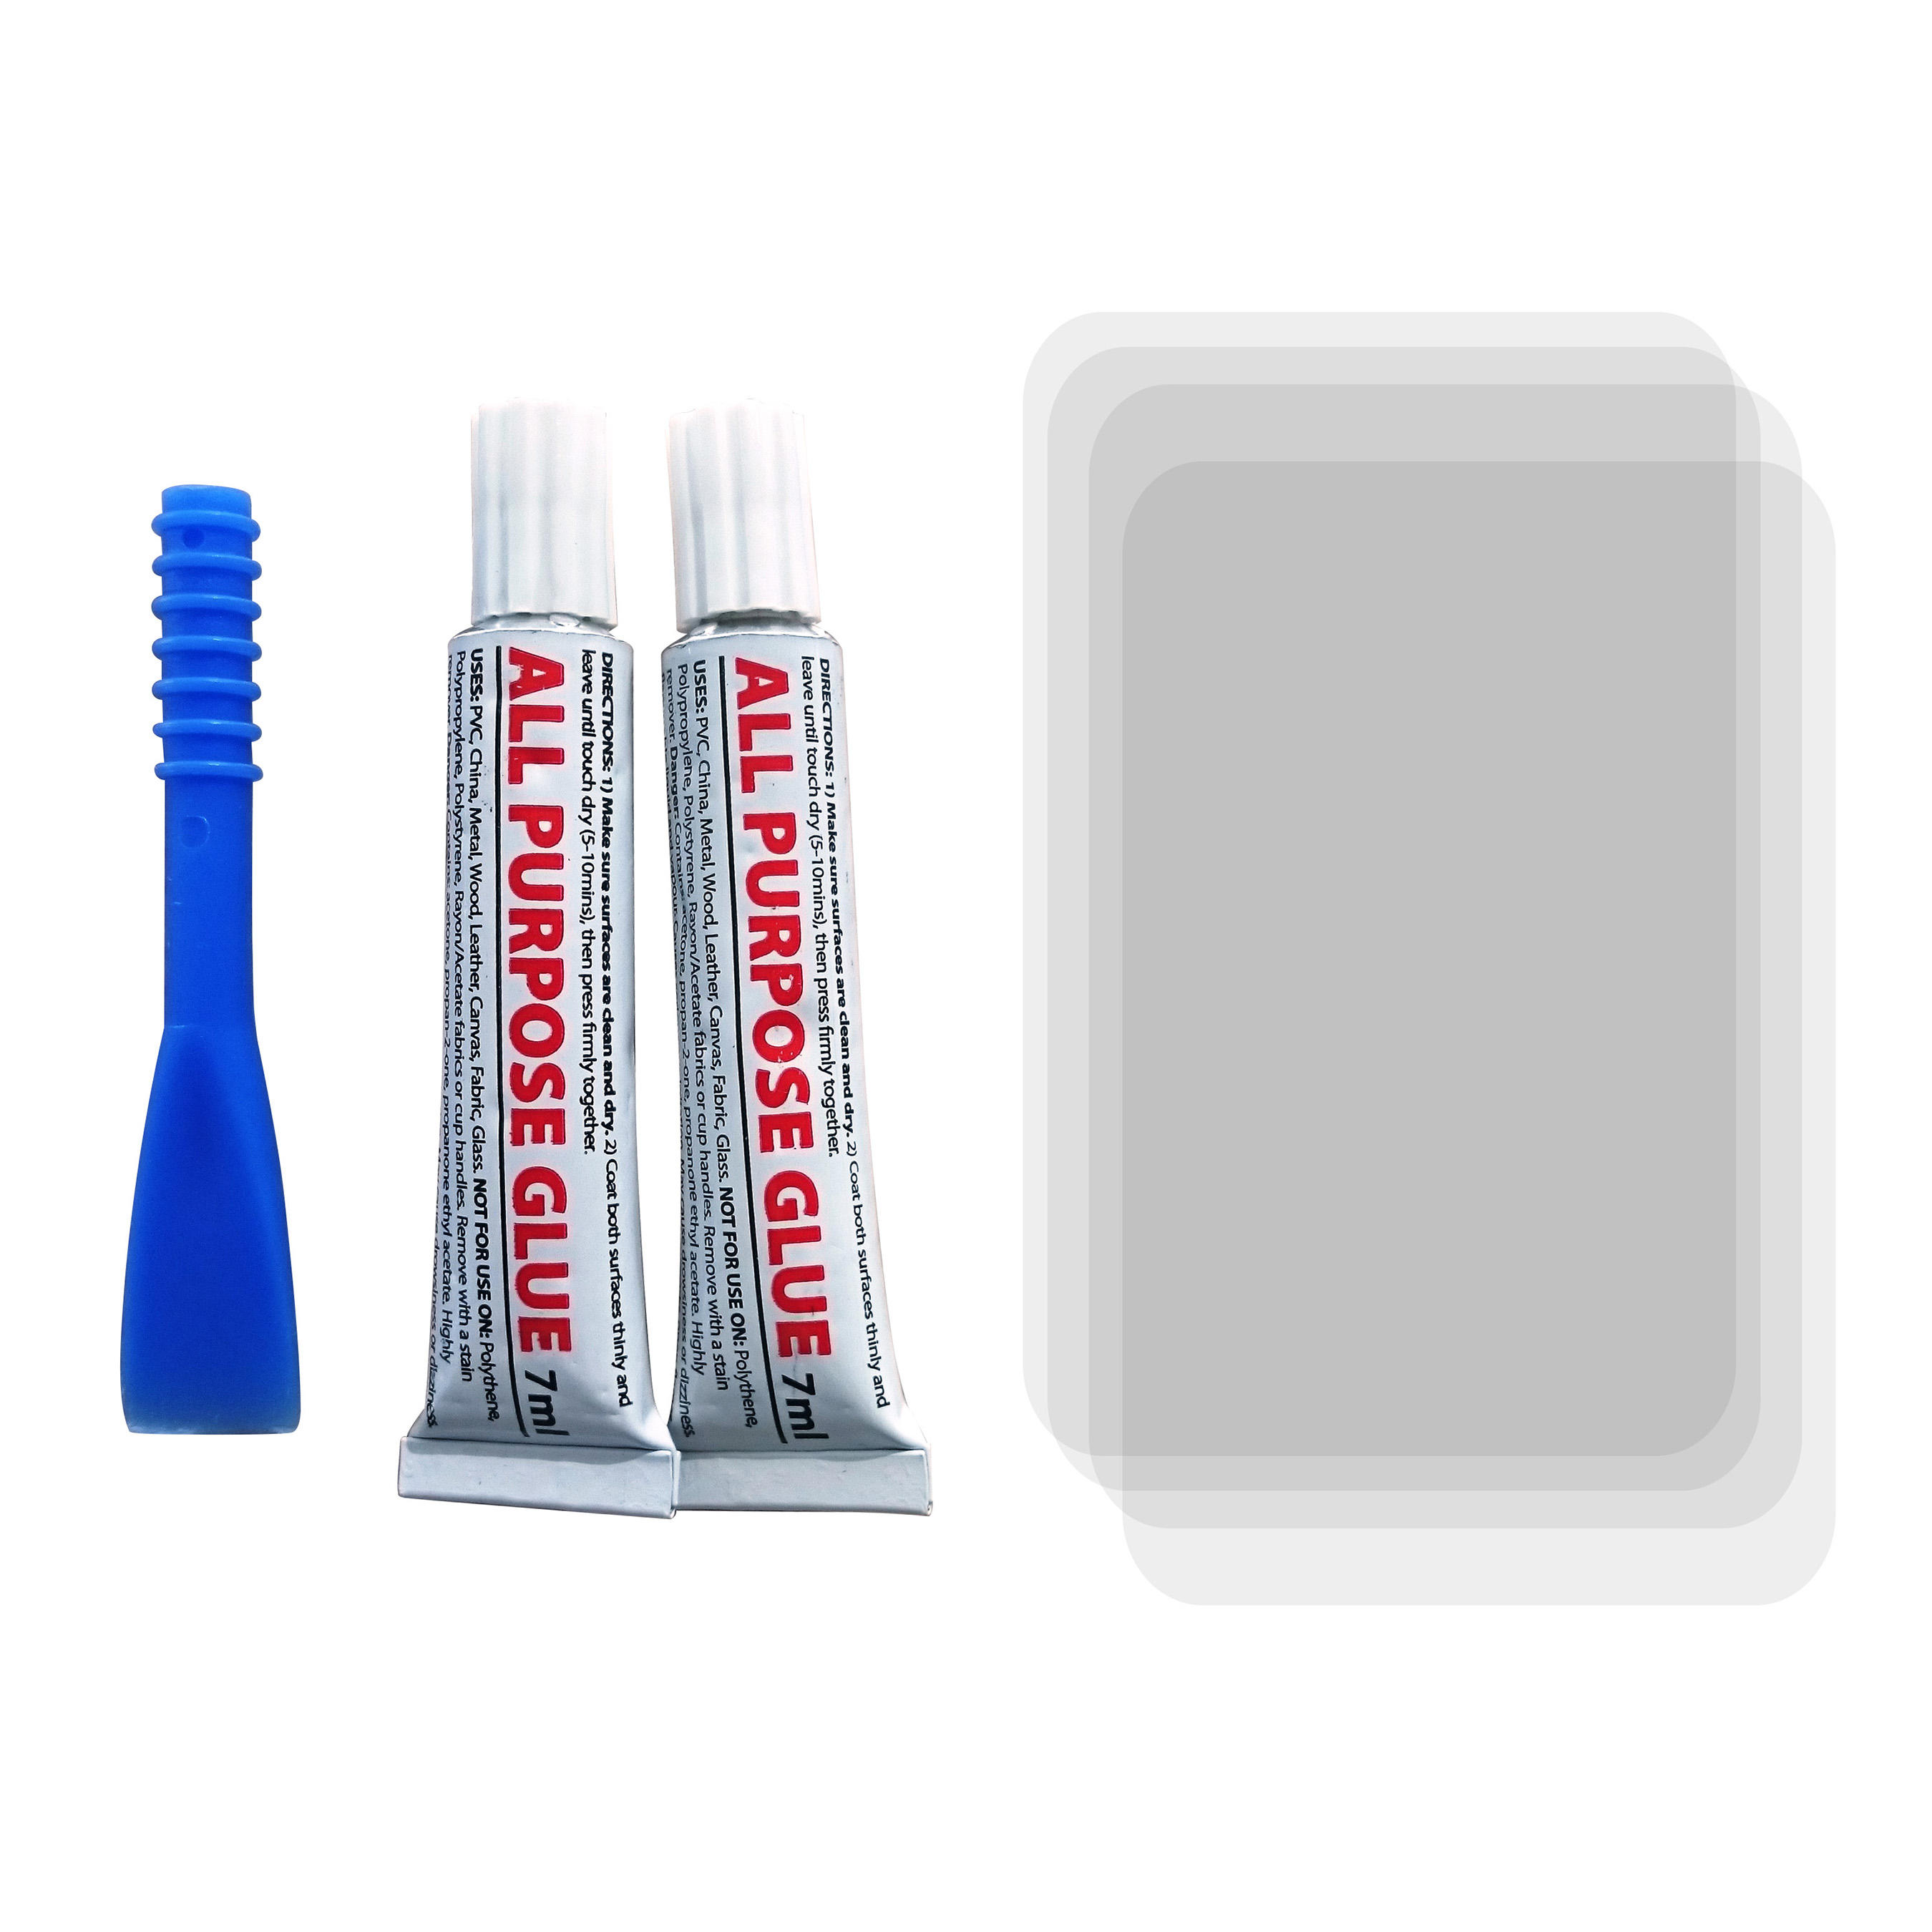 REPAIR KIT WITH...